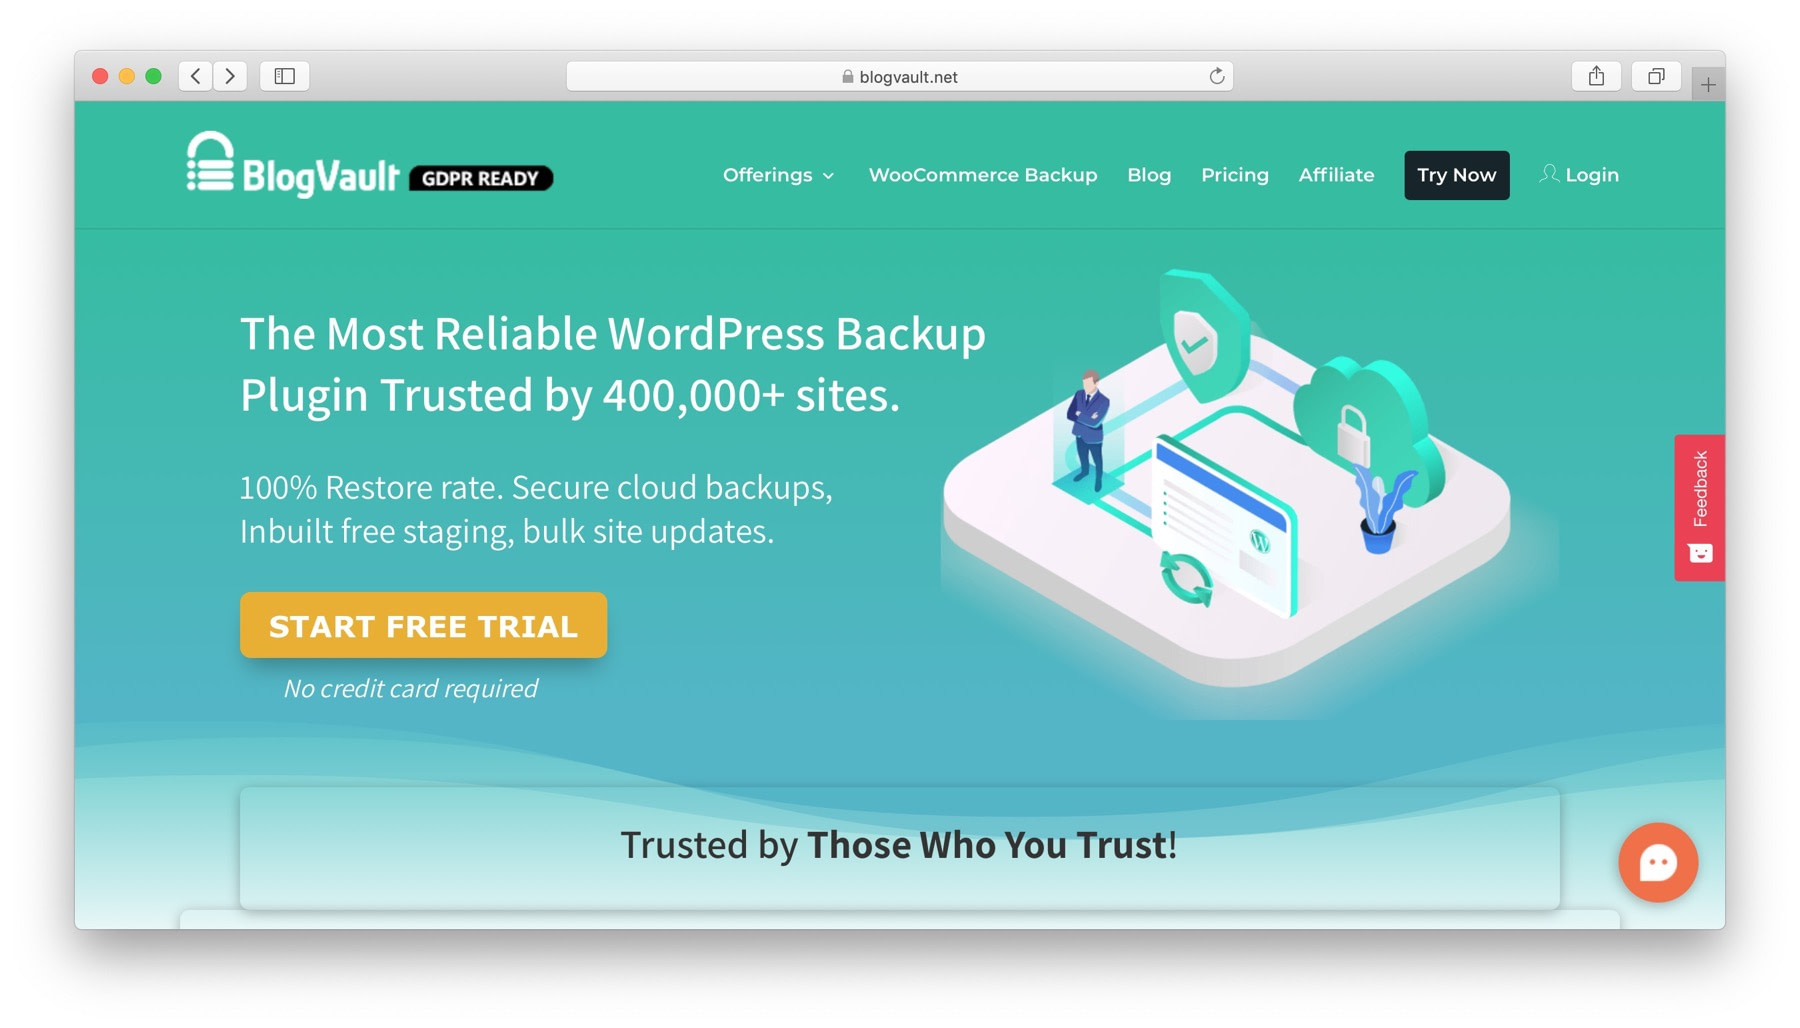 BlogVault helps you backup multiple WordPress sites